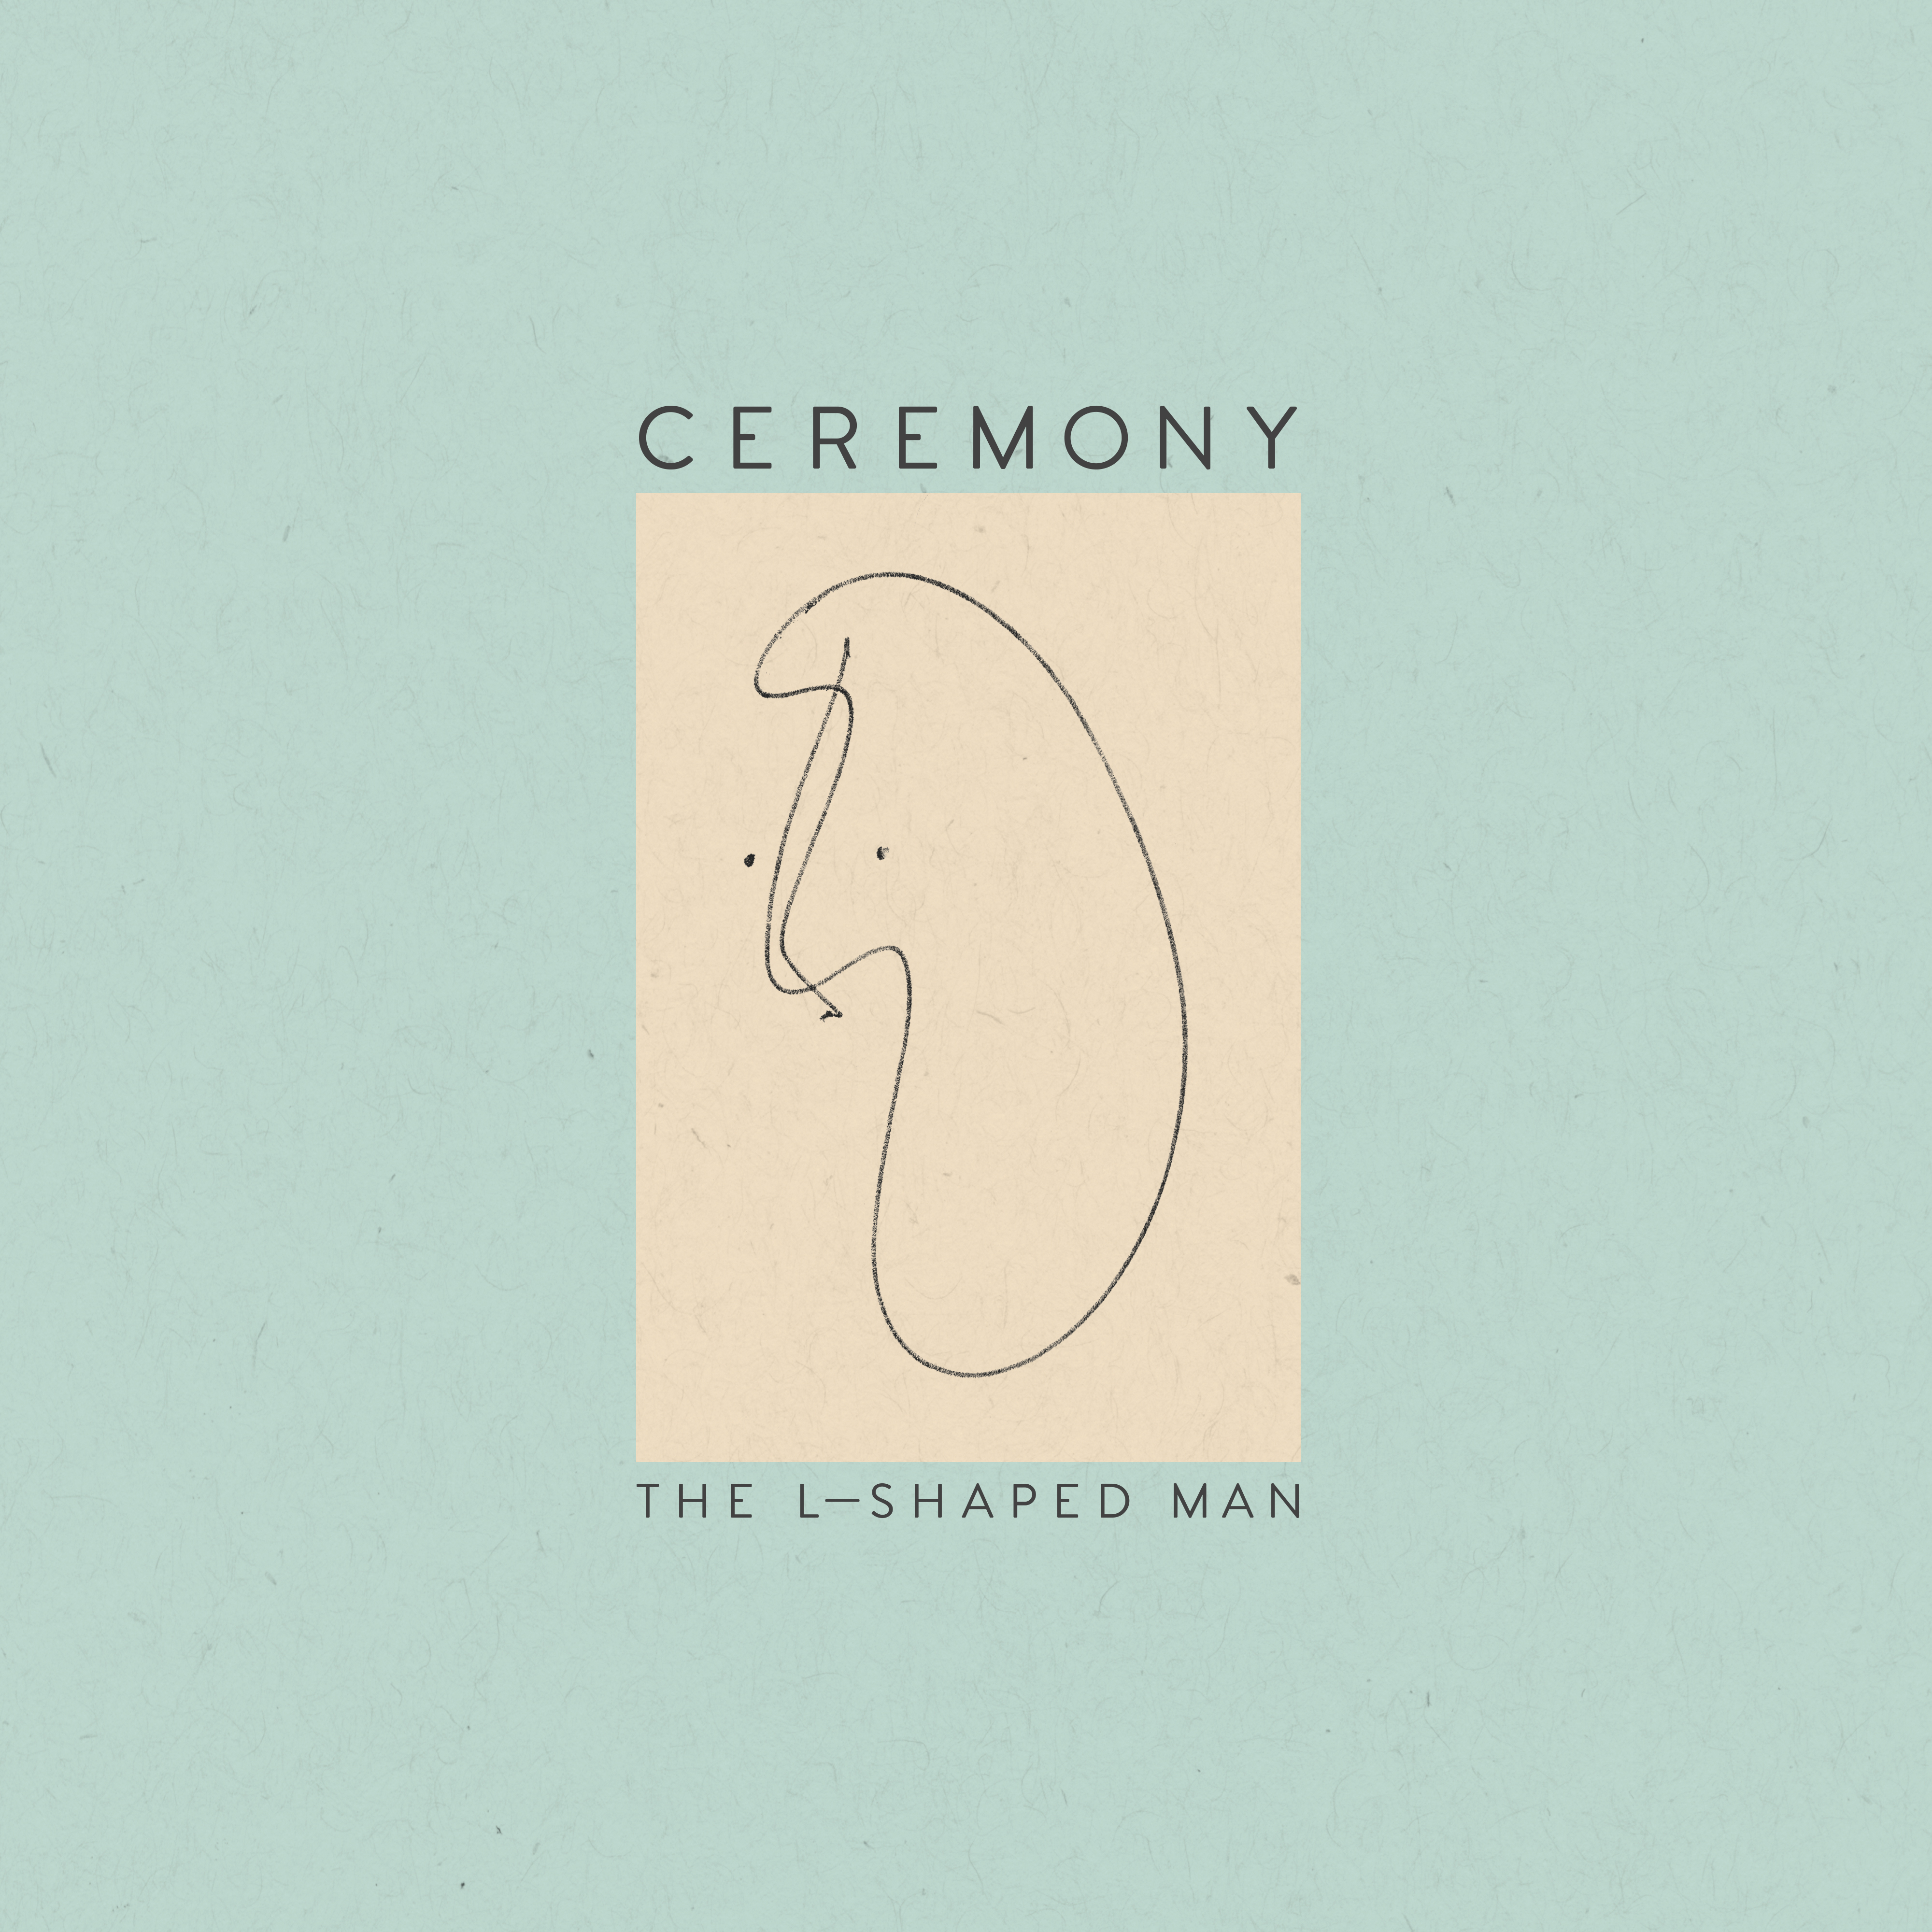 Review of 'The L Shaped Man,' the new album from Ceremony.